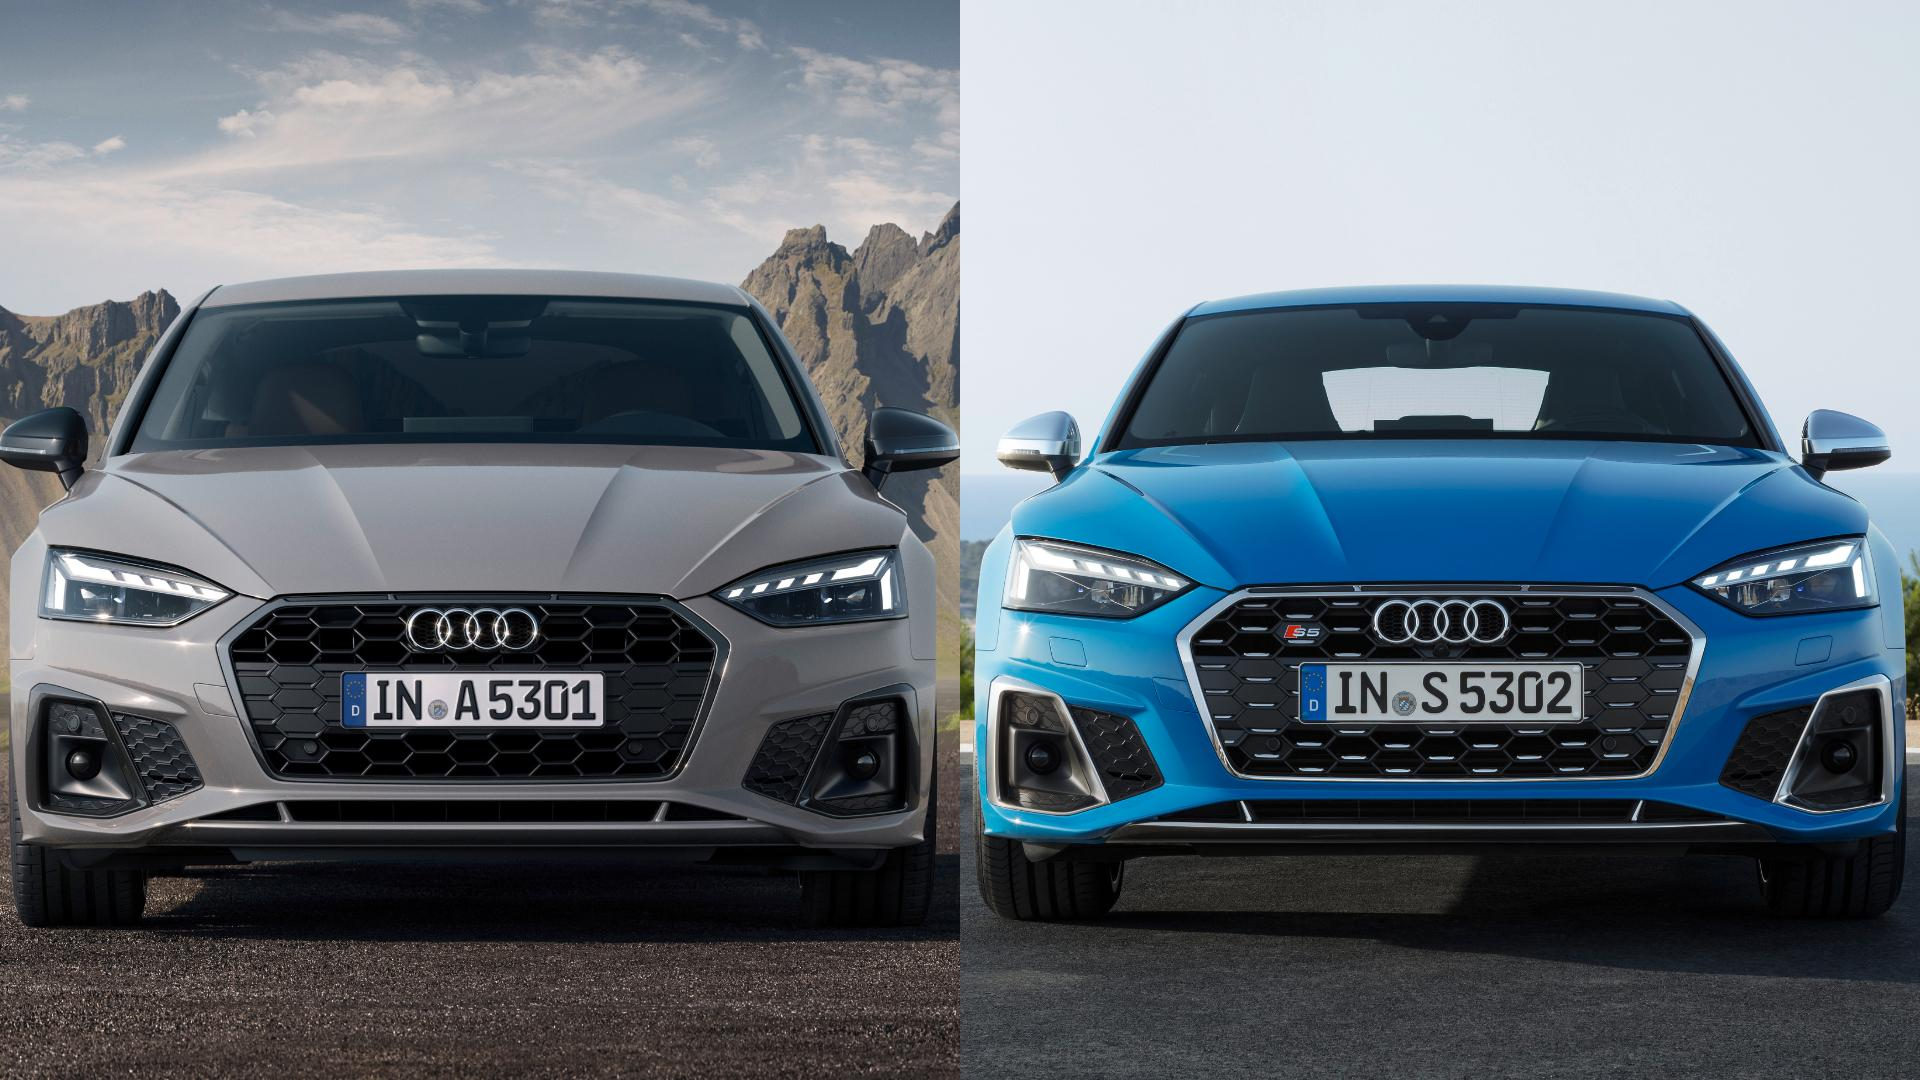 Audi A5 vs S5: Is The V6 Worth It?